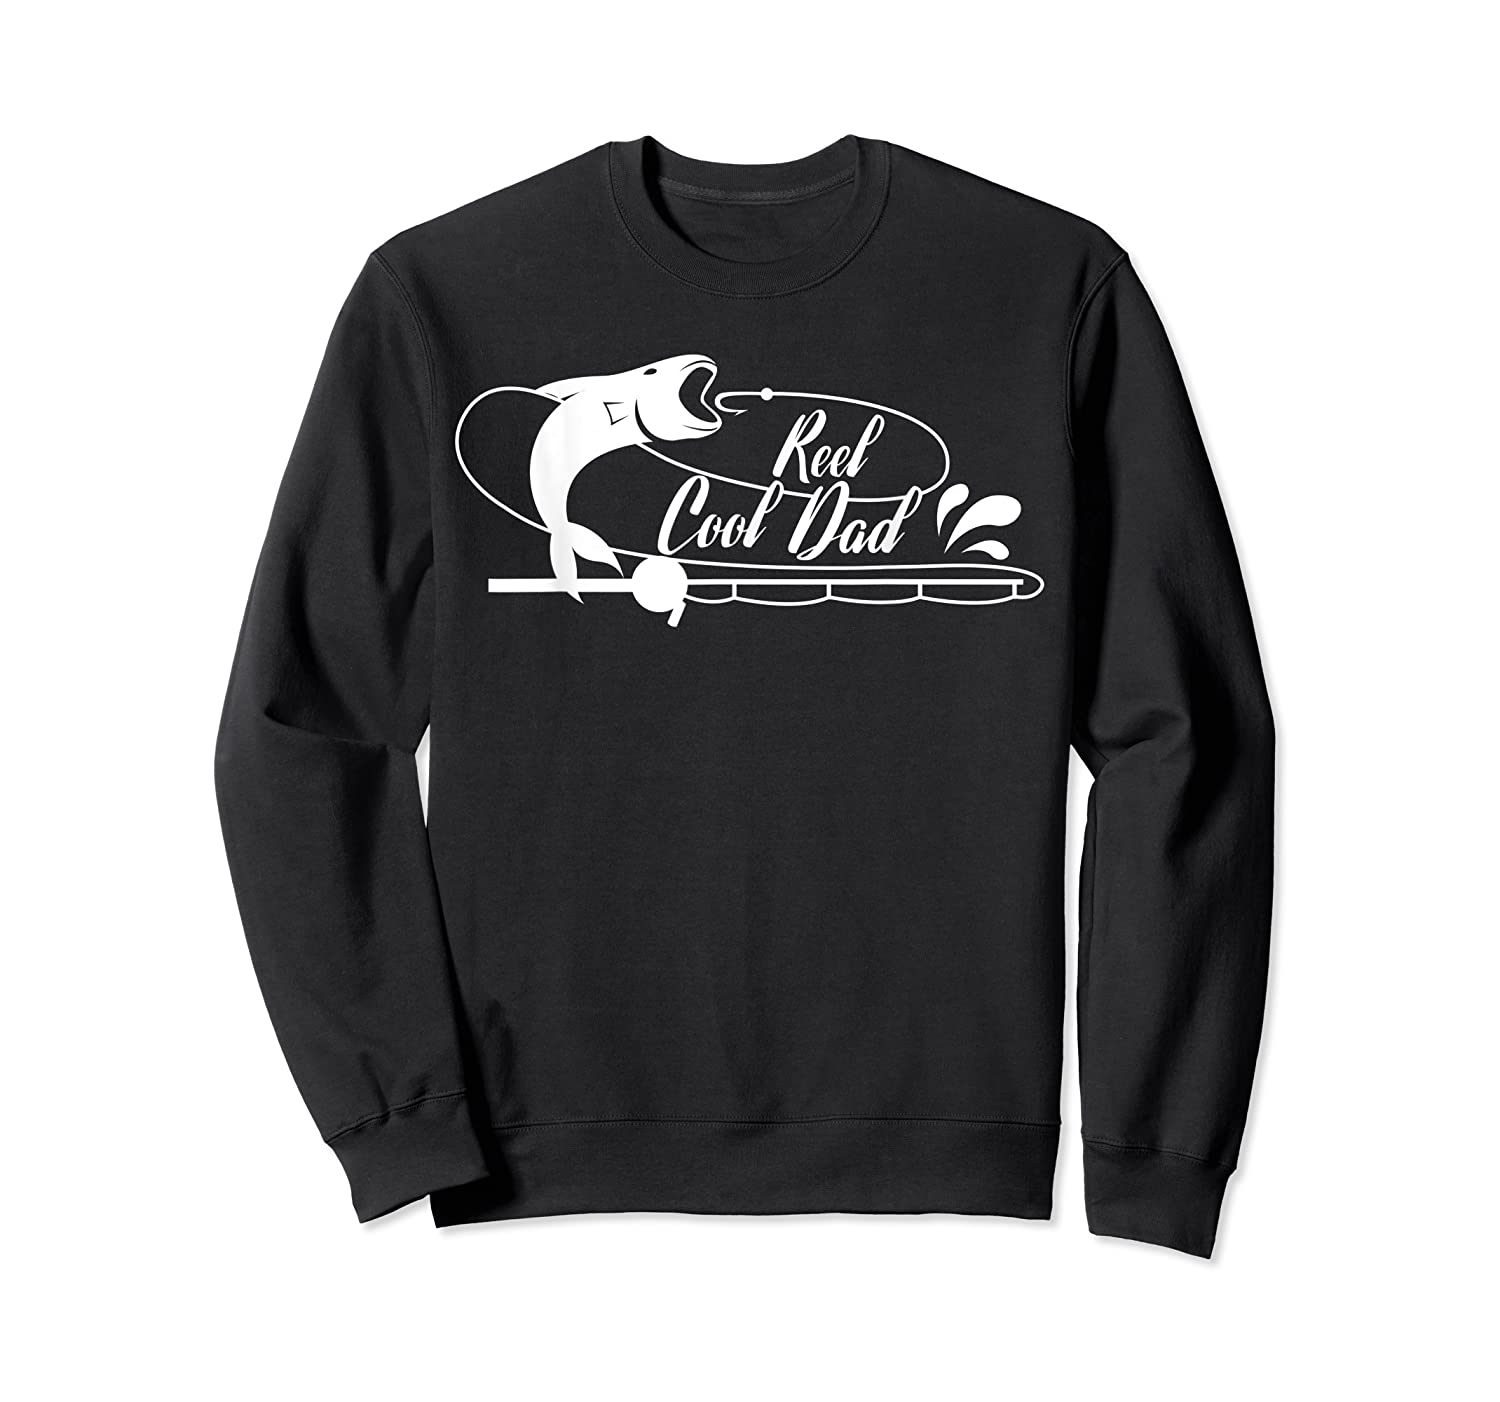 Reel Cool Dad Fishing Daddy Father's Day Gift Shirts Crewneck Sweater